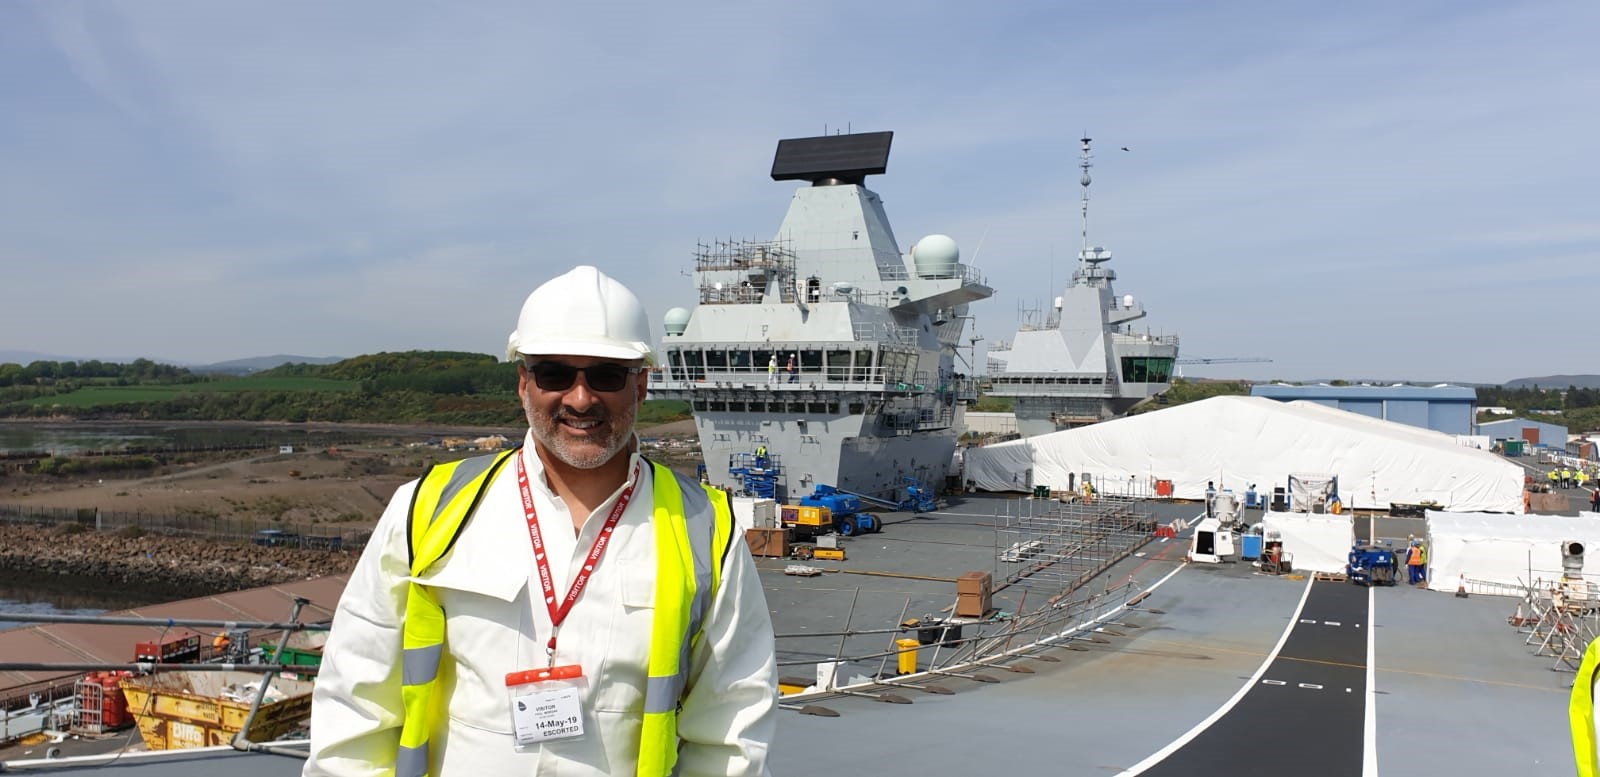 Naomi House Director of Fundraising Paul Morgan on HMS Prince of Wales flight deck.jpg